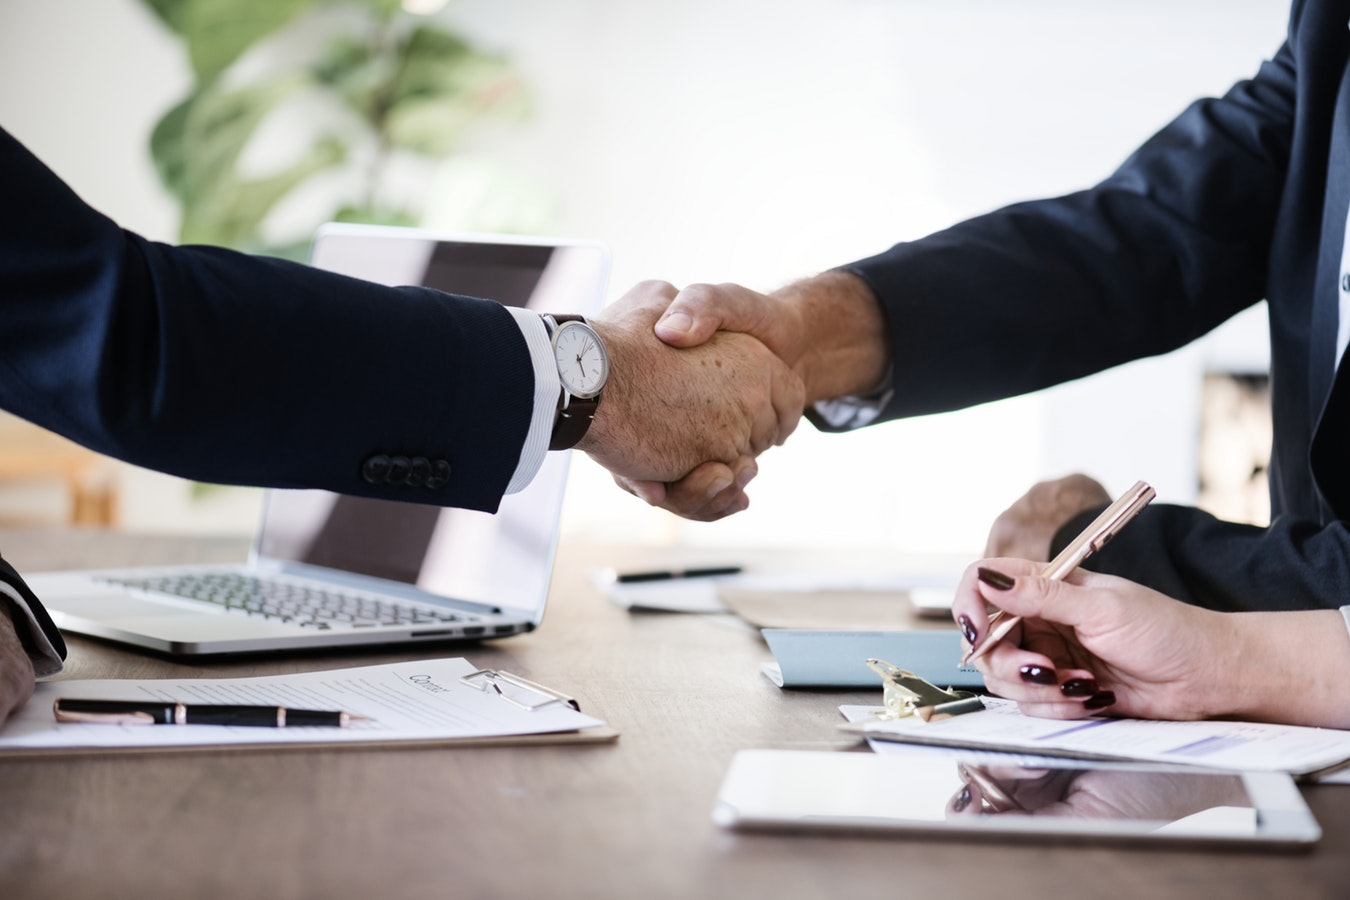 The Key to Supplier Management: Build Lasting Relationships